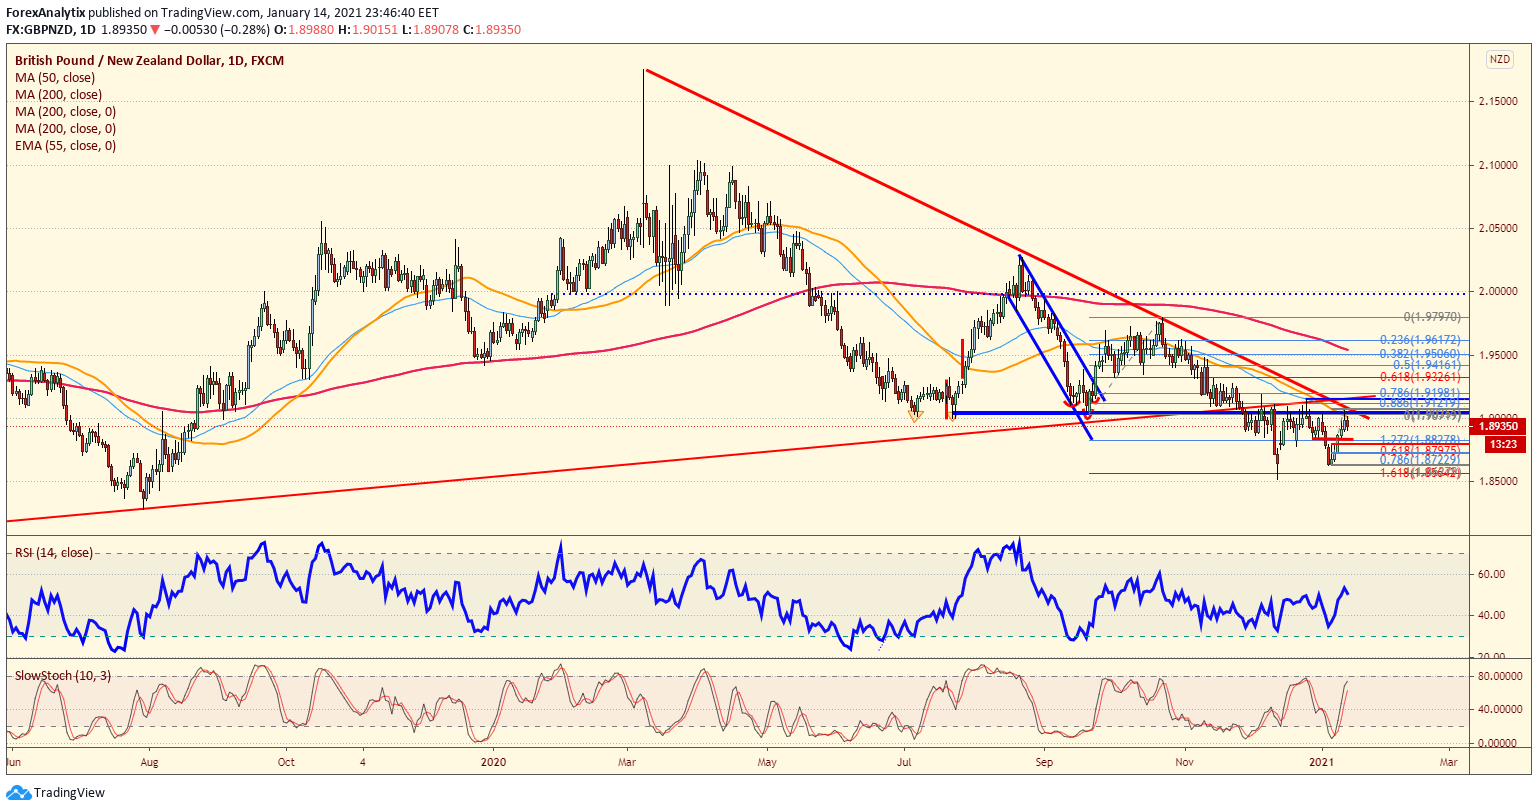 Chart Of The Day: GBP/NZD